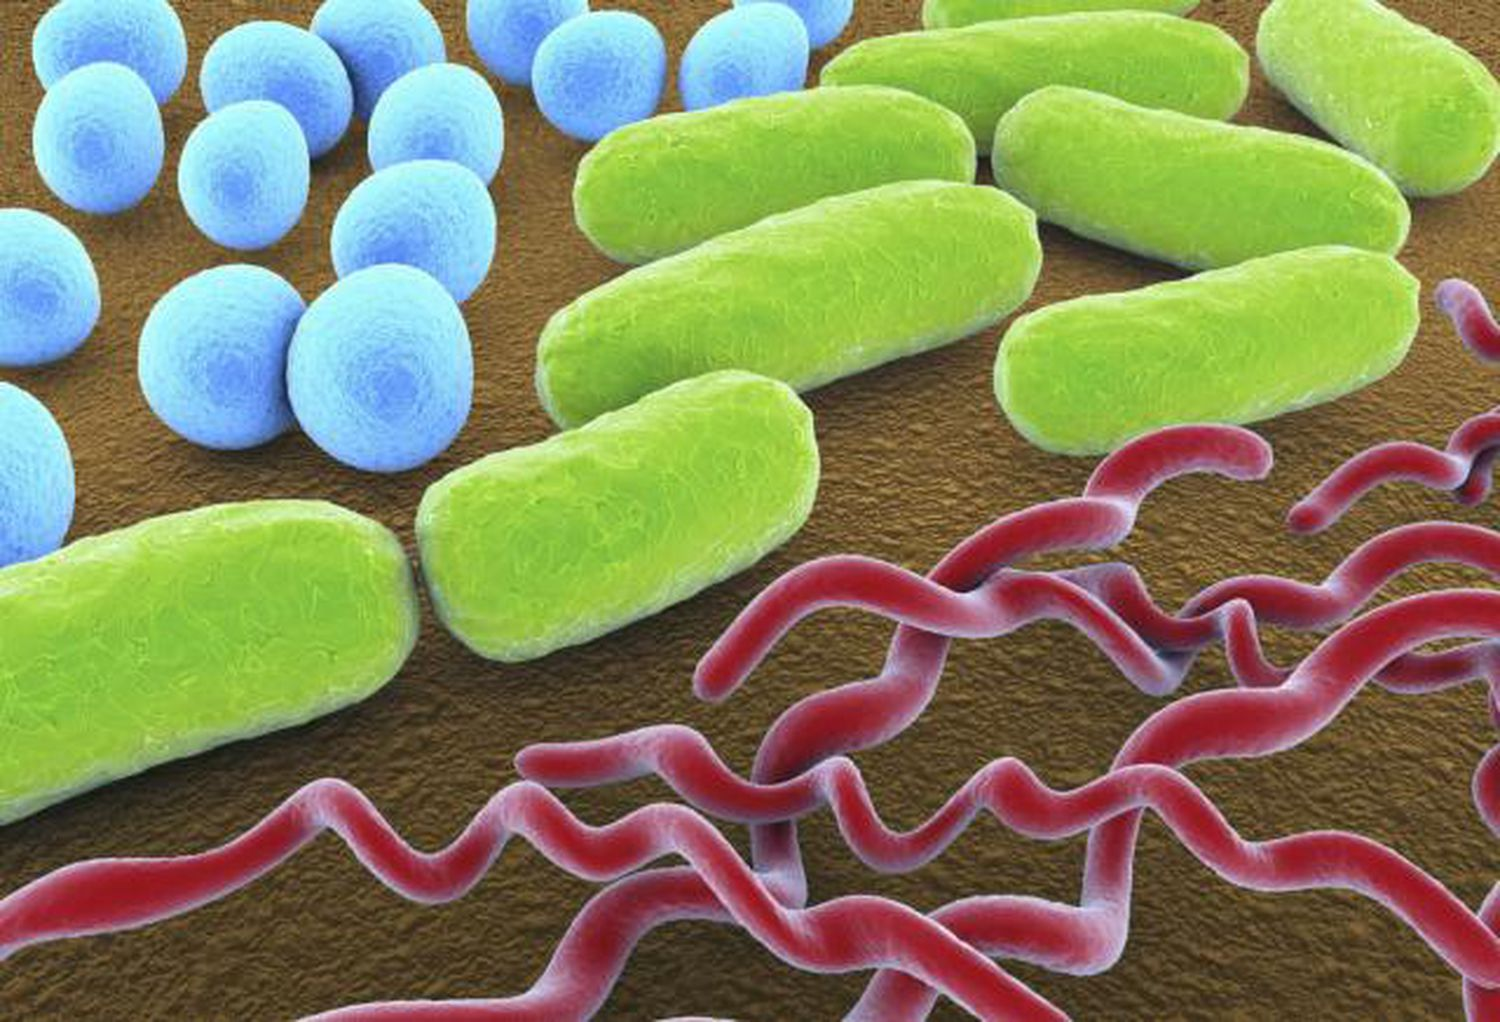 3 Common Bacteria Shapes